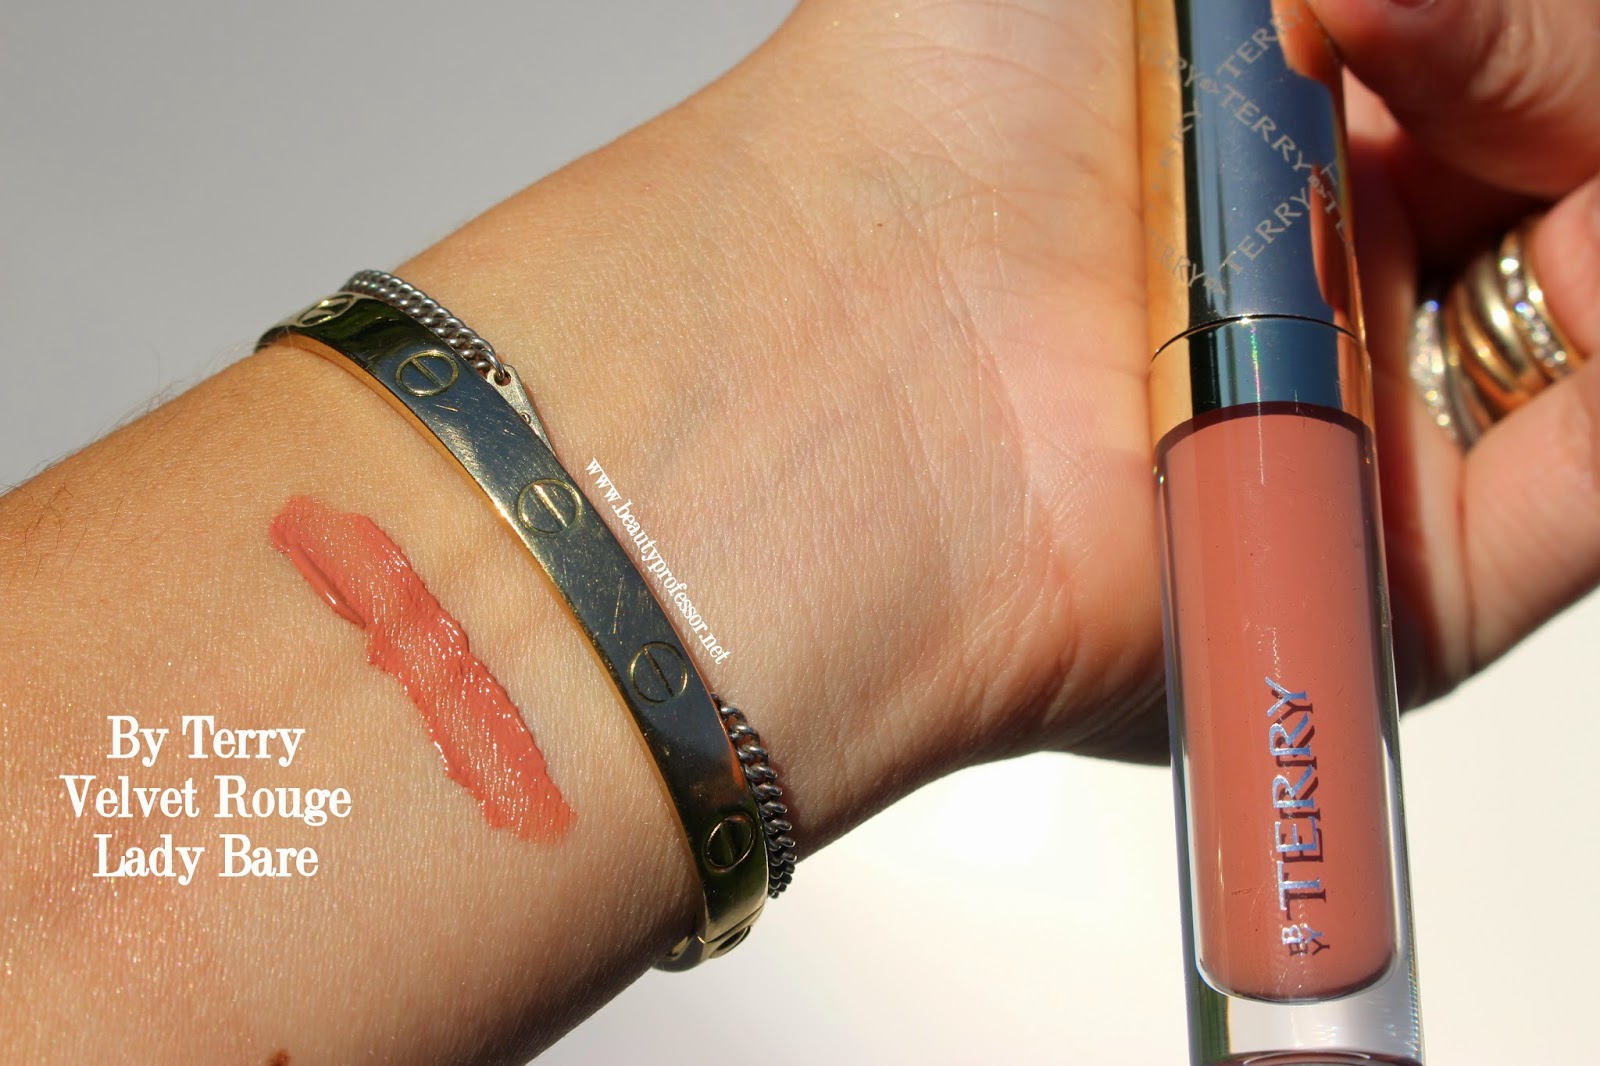 by terry velvet rouge lady bare swatch